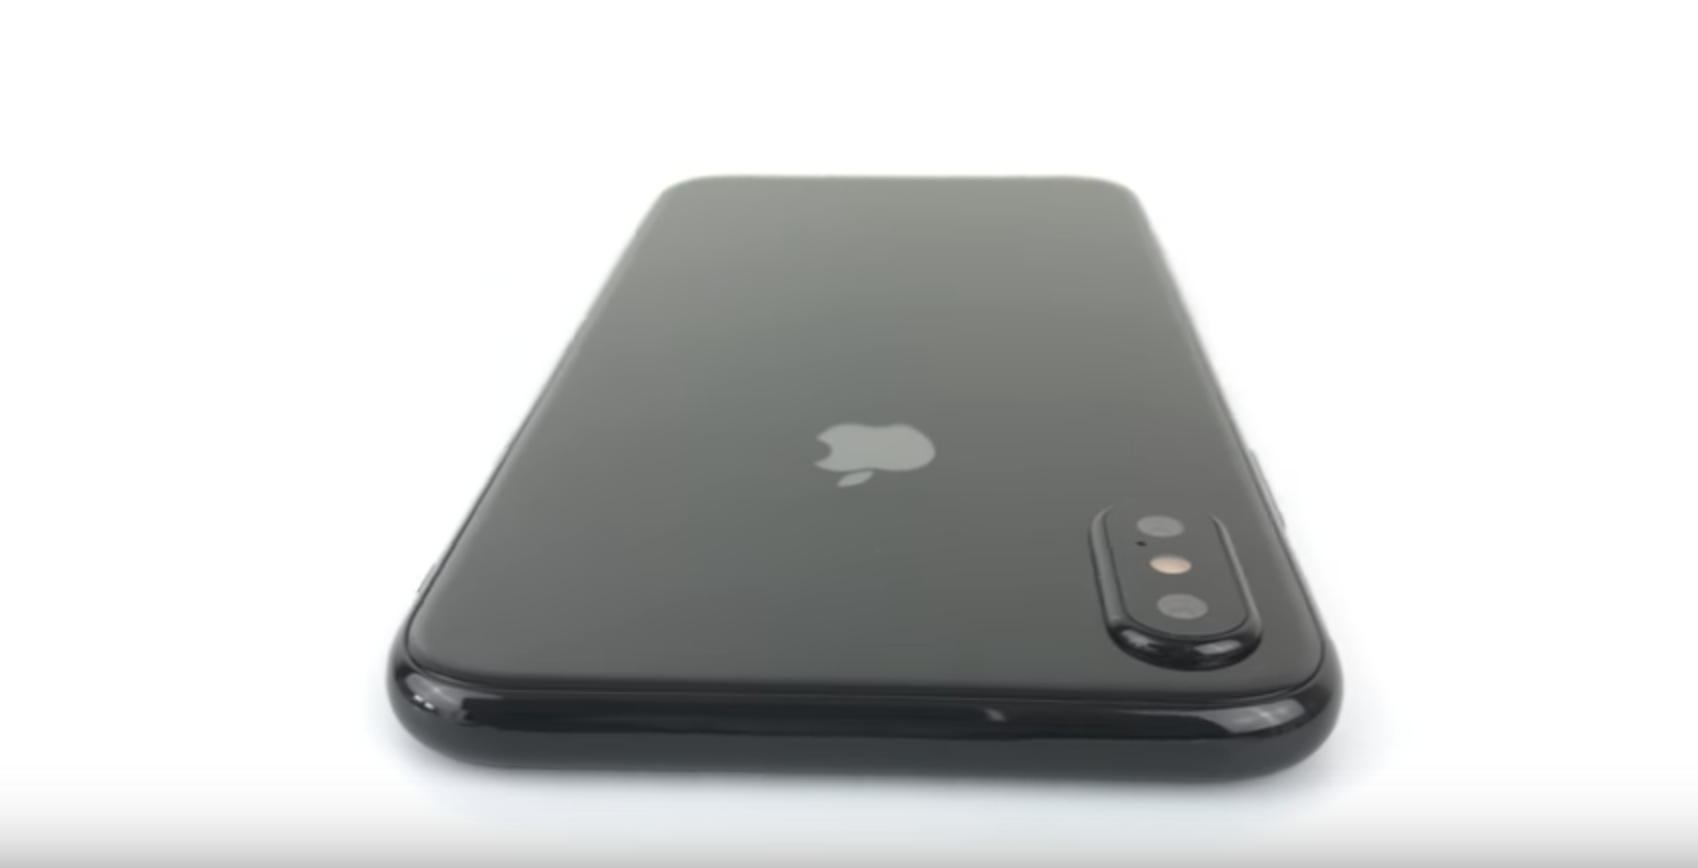 IPHONE 8 PREZZO EXSP